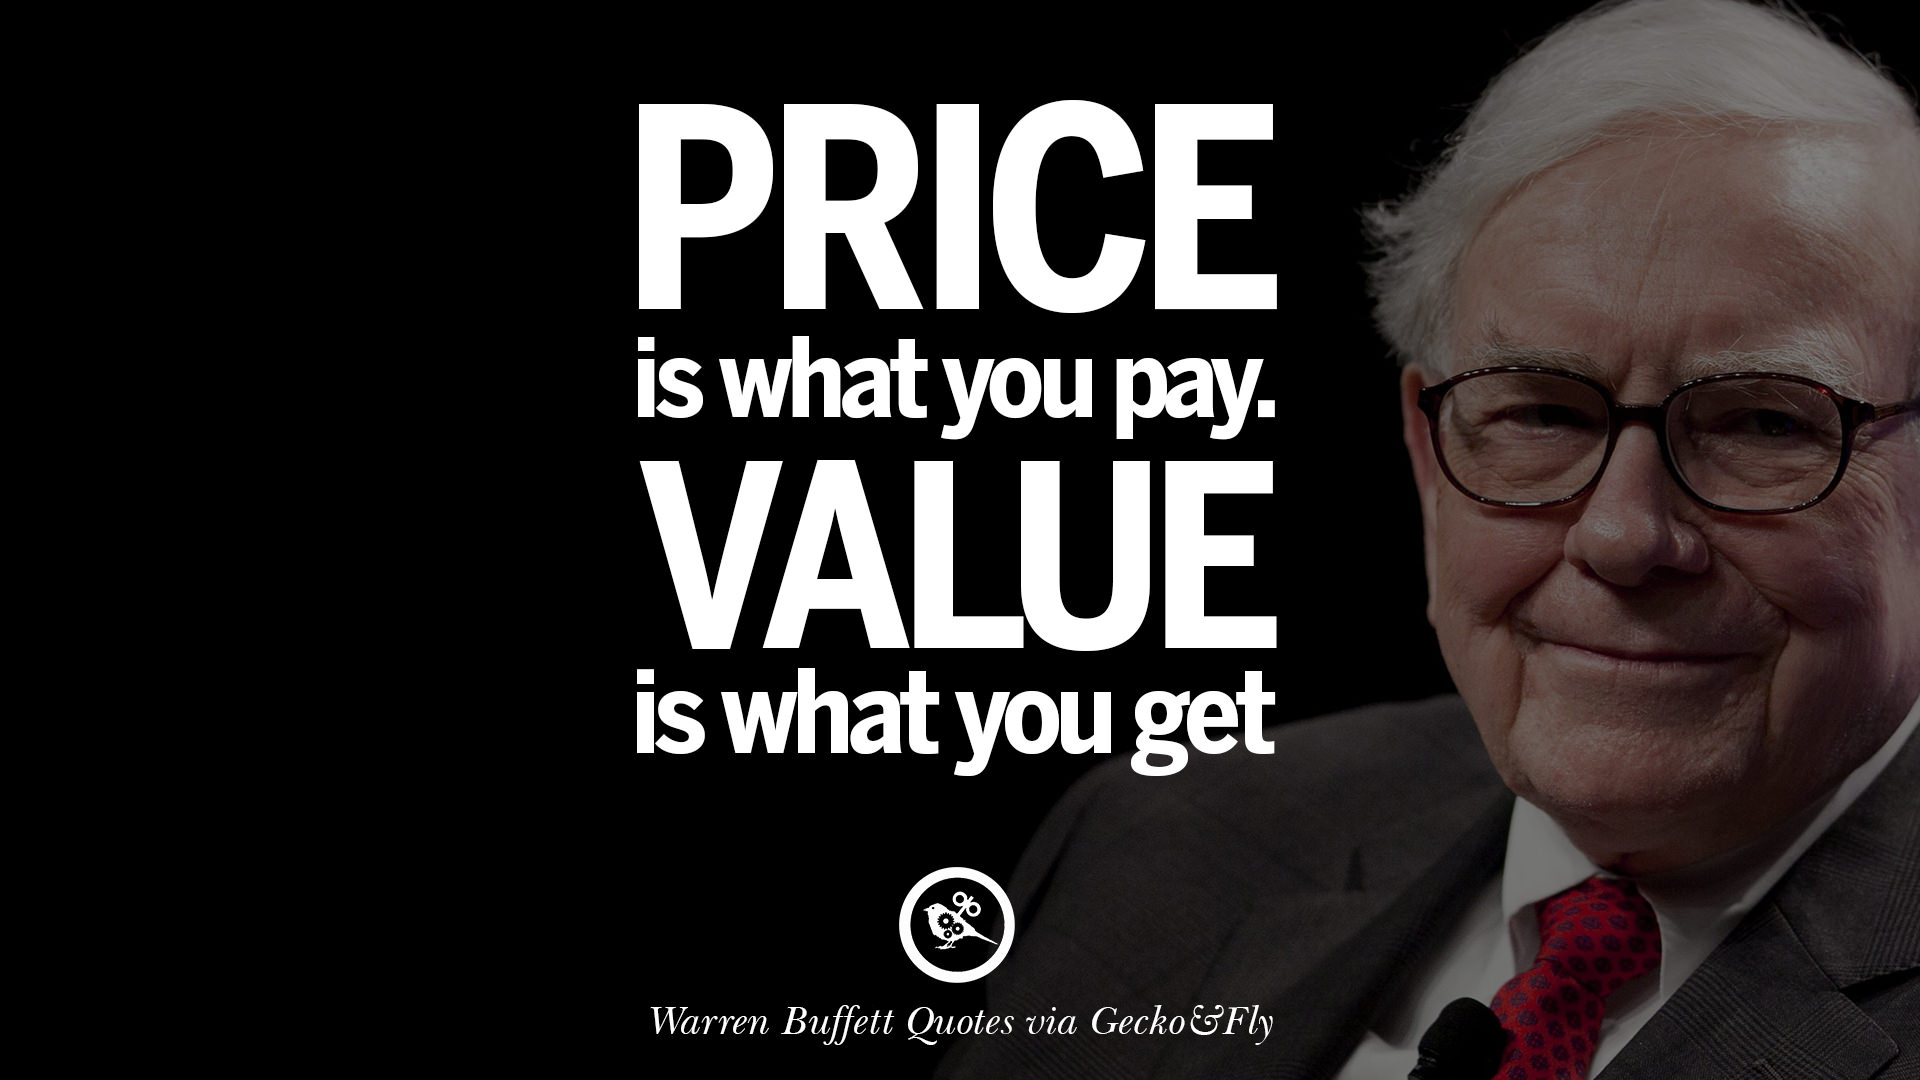 Get Money Quotes 12 Best Warren Buffett Quotes On Investment Life And Making Money